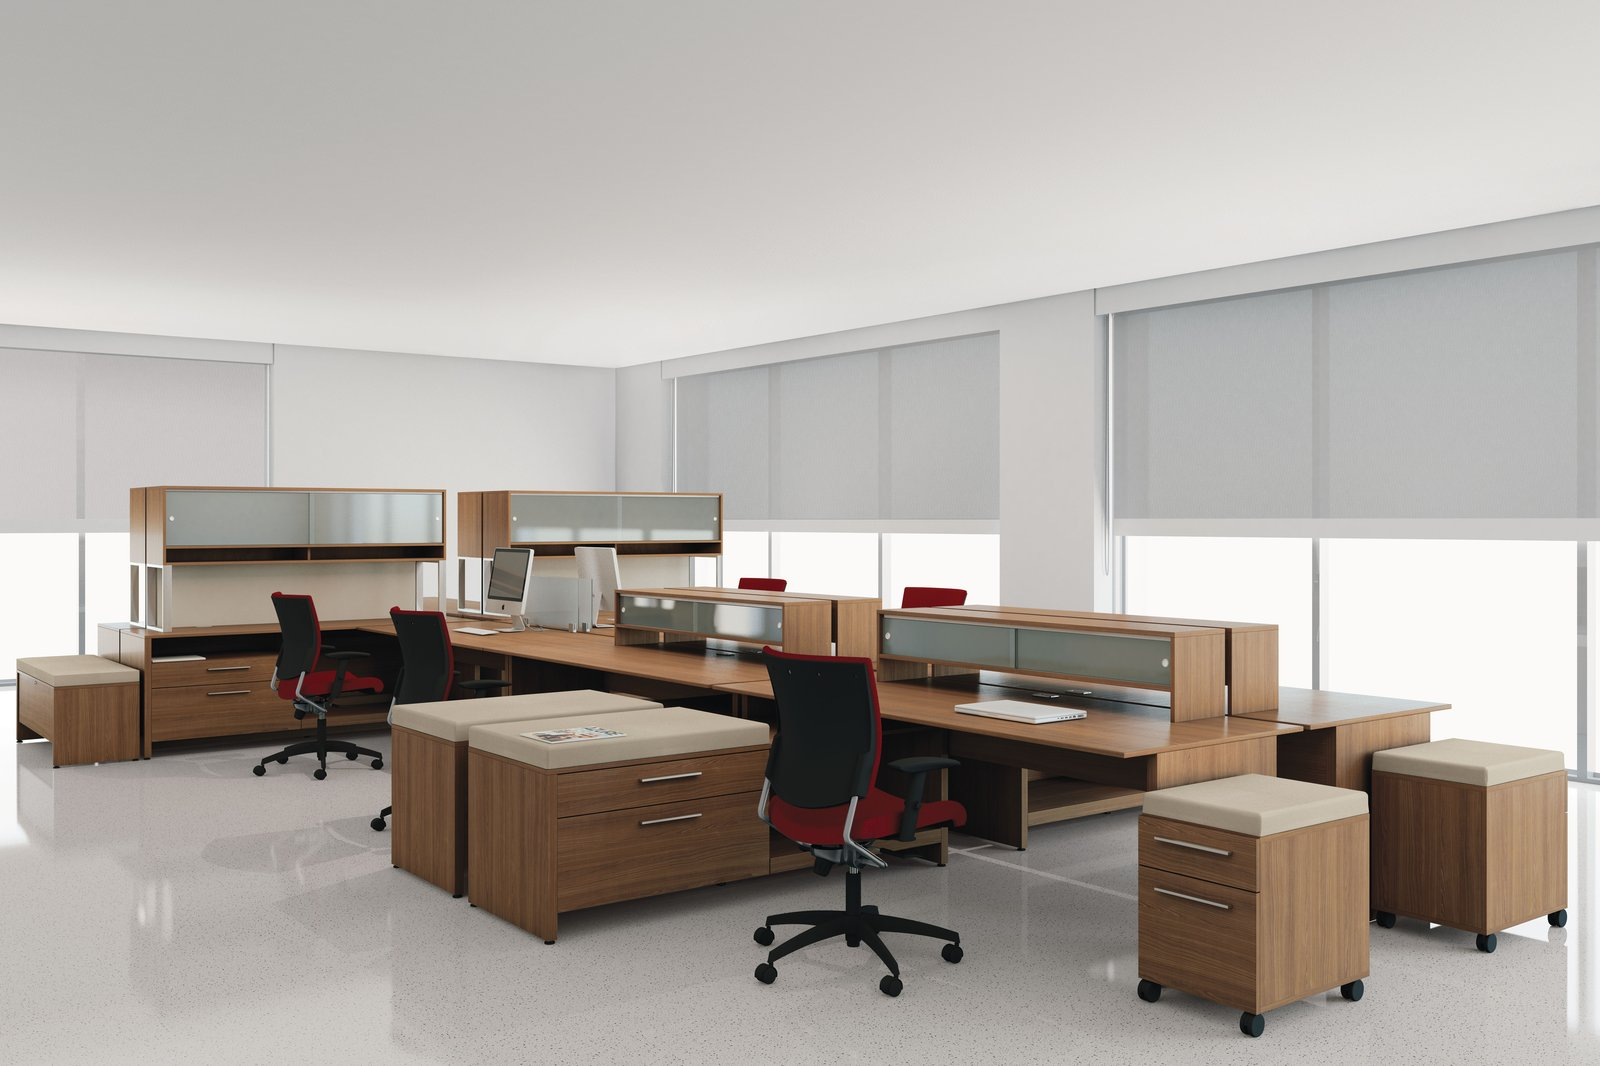 Studio photograph of a corner open-office, with side return credenzas. Seated at each is a red Graphic rolling chair, model 2739.